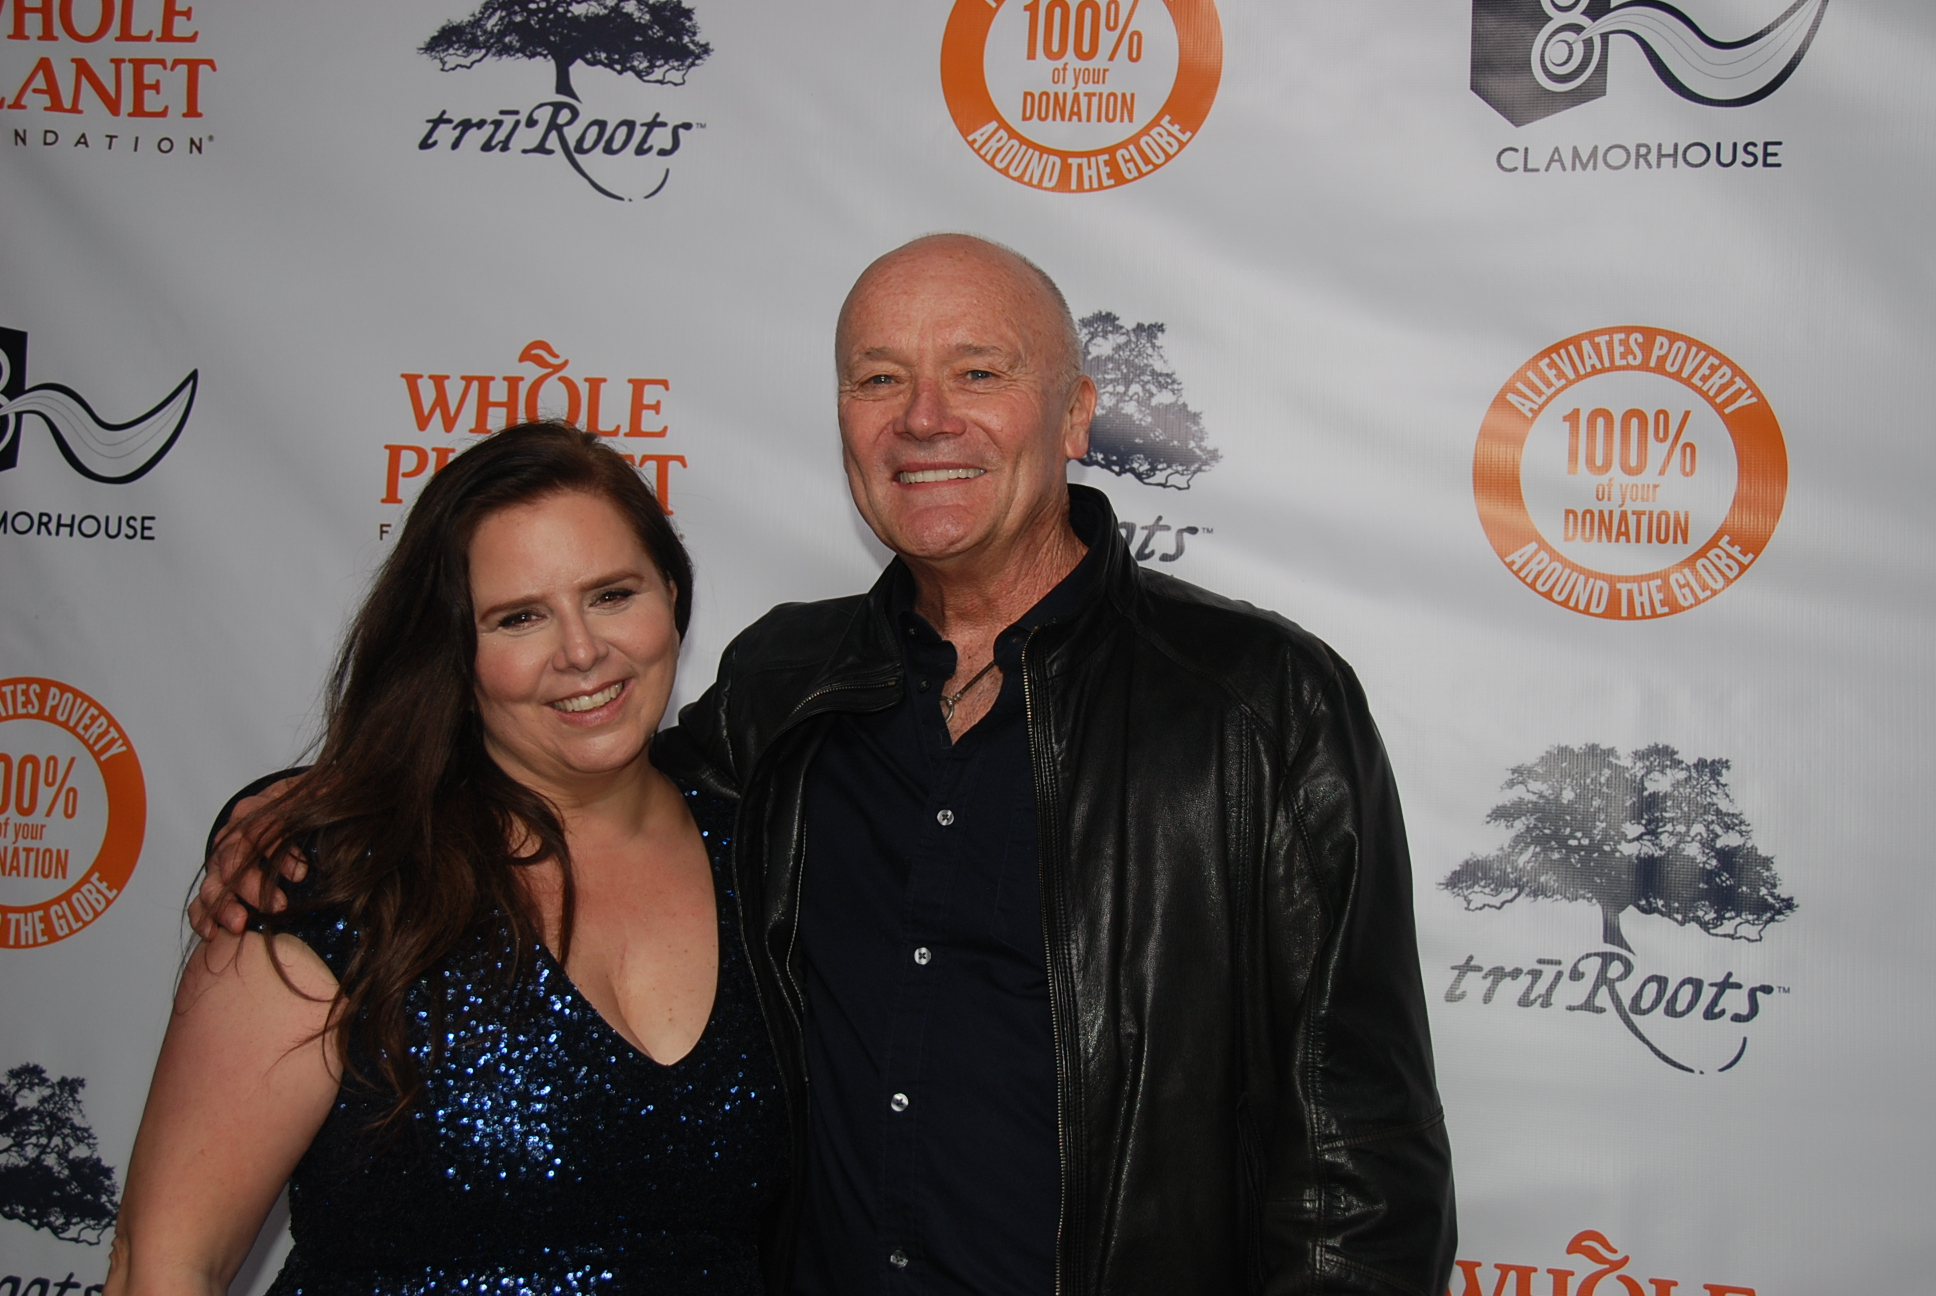 Whole Planet Foundation Pre Grammys with Creed Bratton